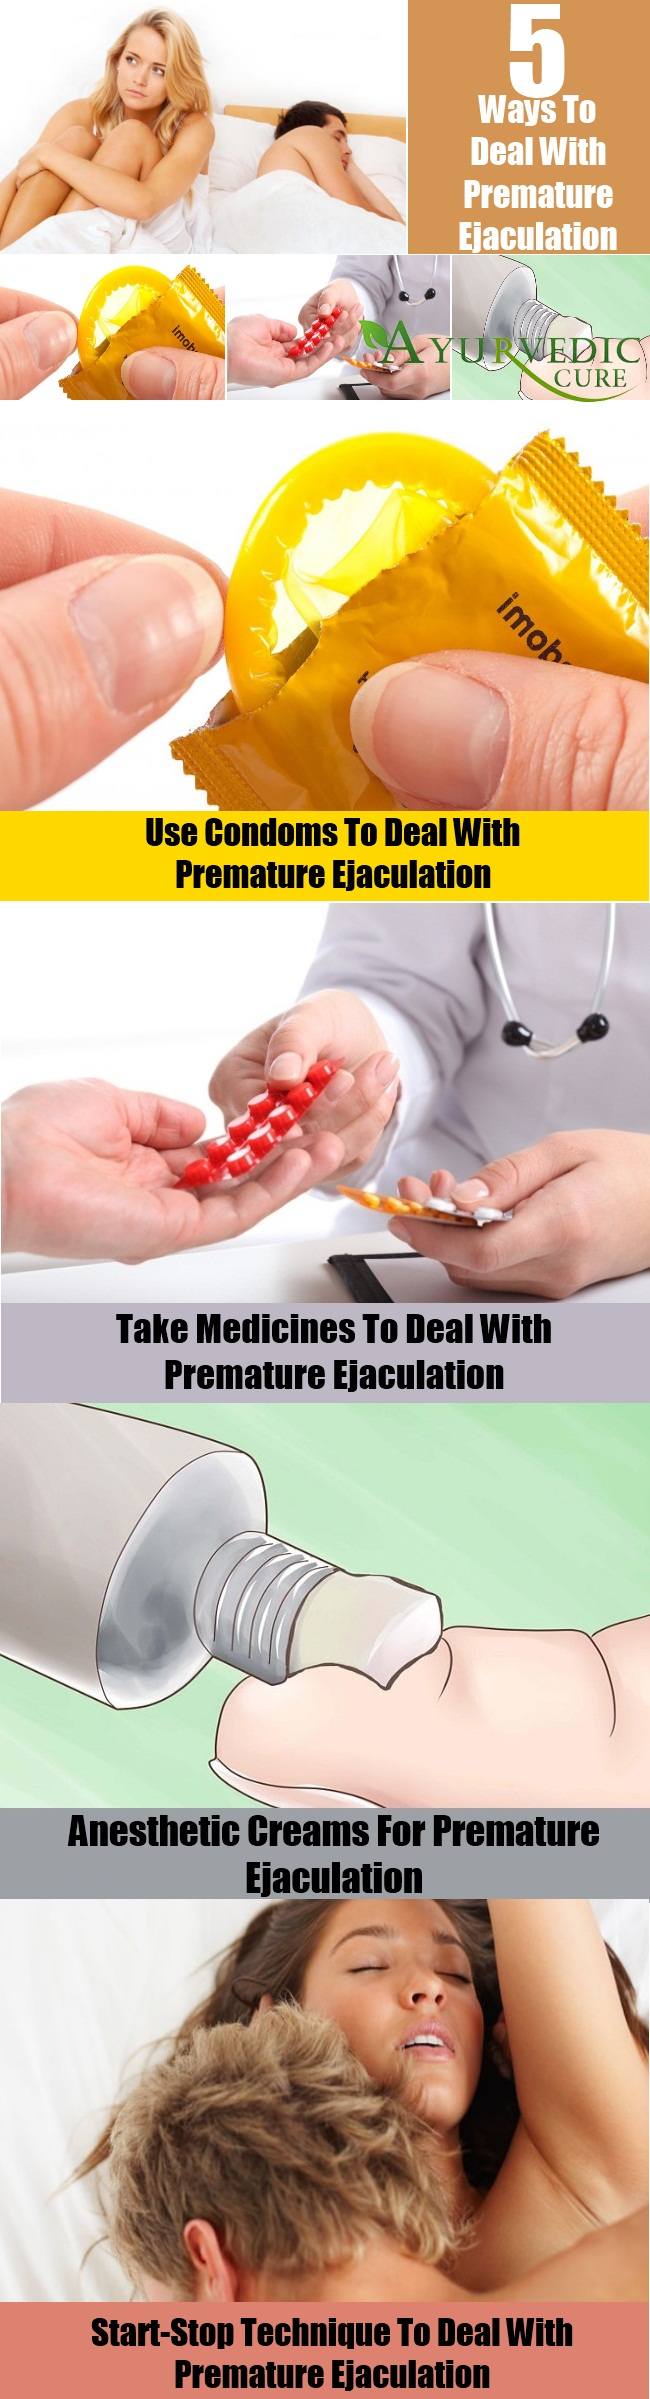 How To Deal With Premature Ejaculation